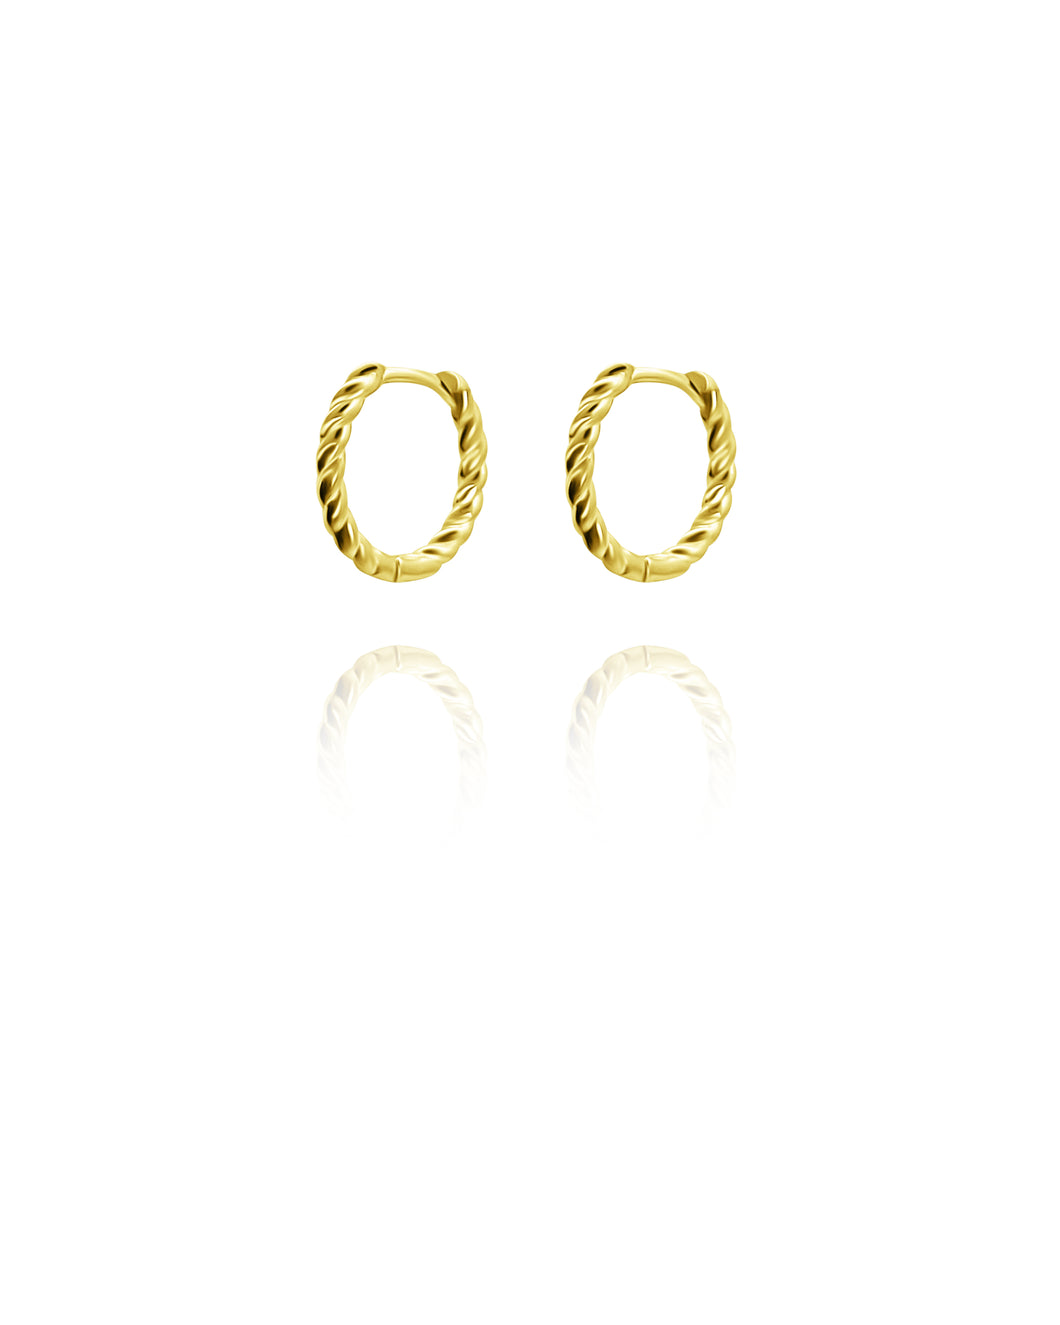 Syd Gold | Gold Plated 925 Sterling Silver